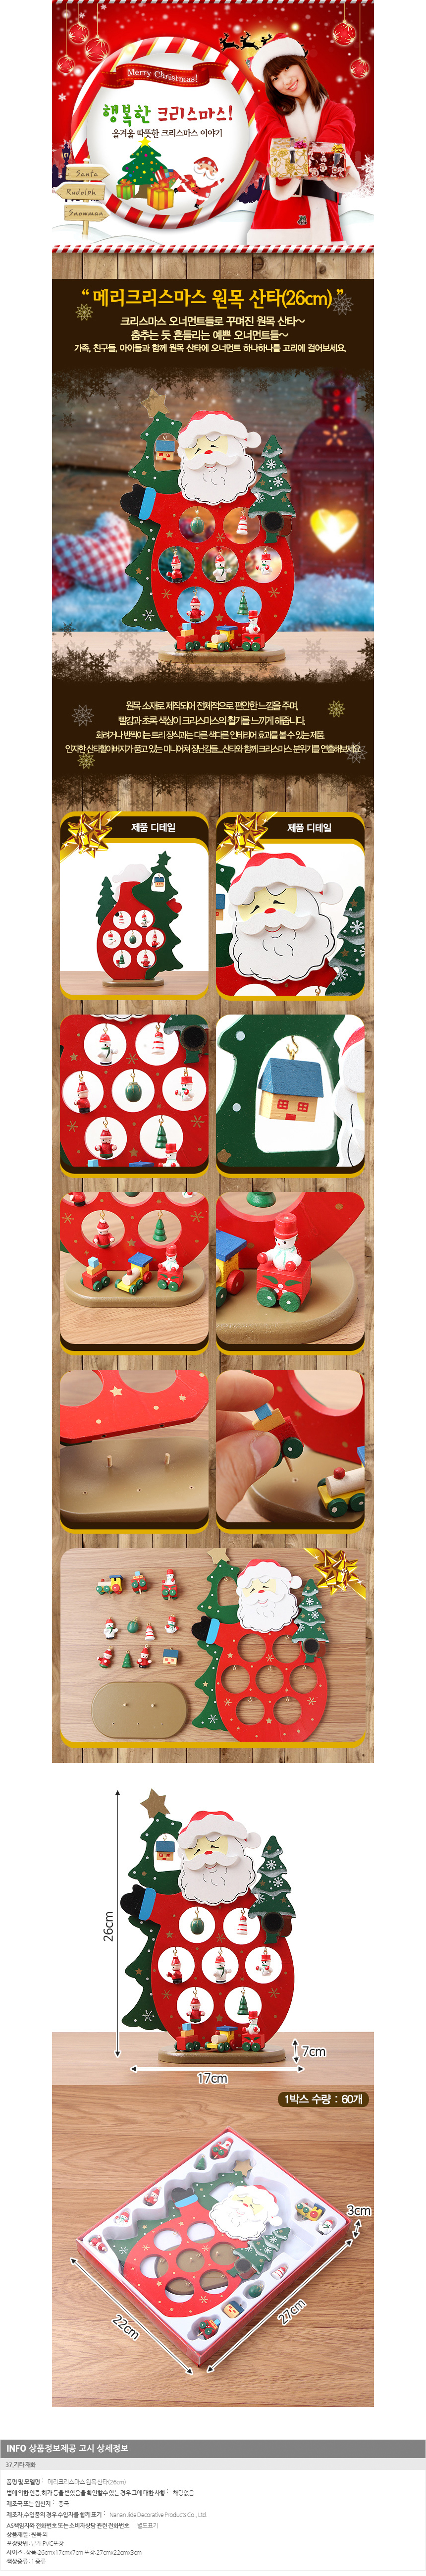 [ WINEQOK ] Christmas Goods / Merry Christmas Wooden Santa